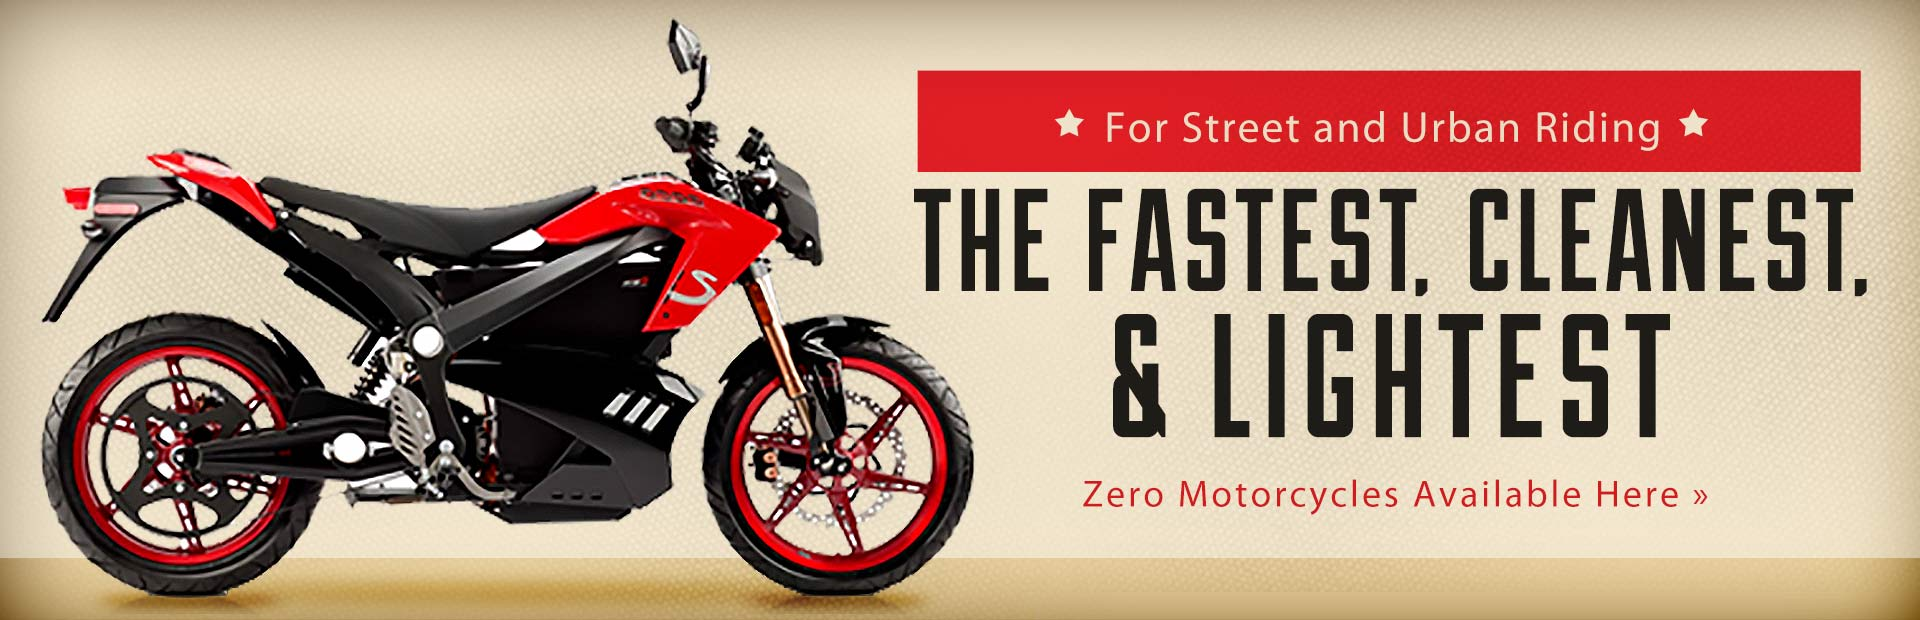 Click here to view street bikes from Zero Motorcycles.